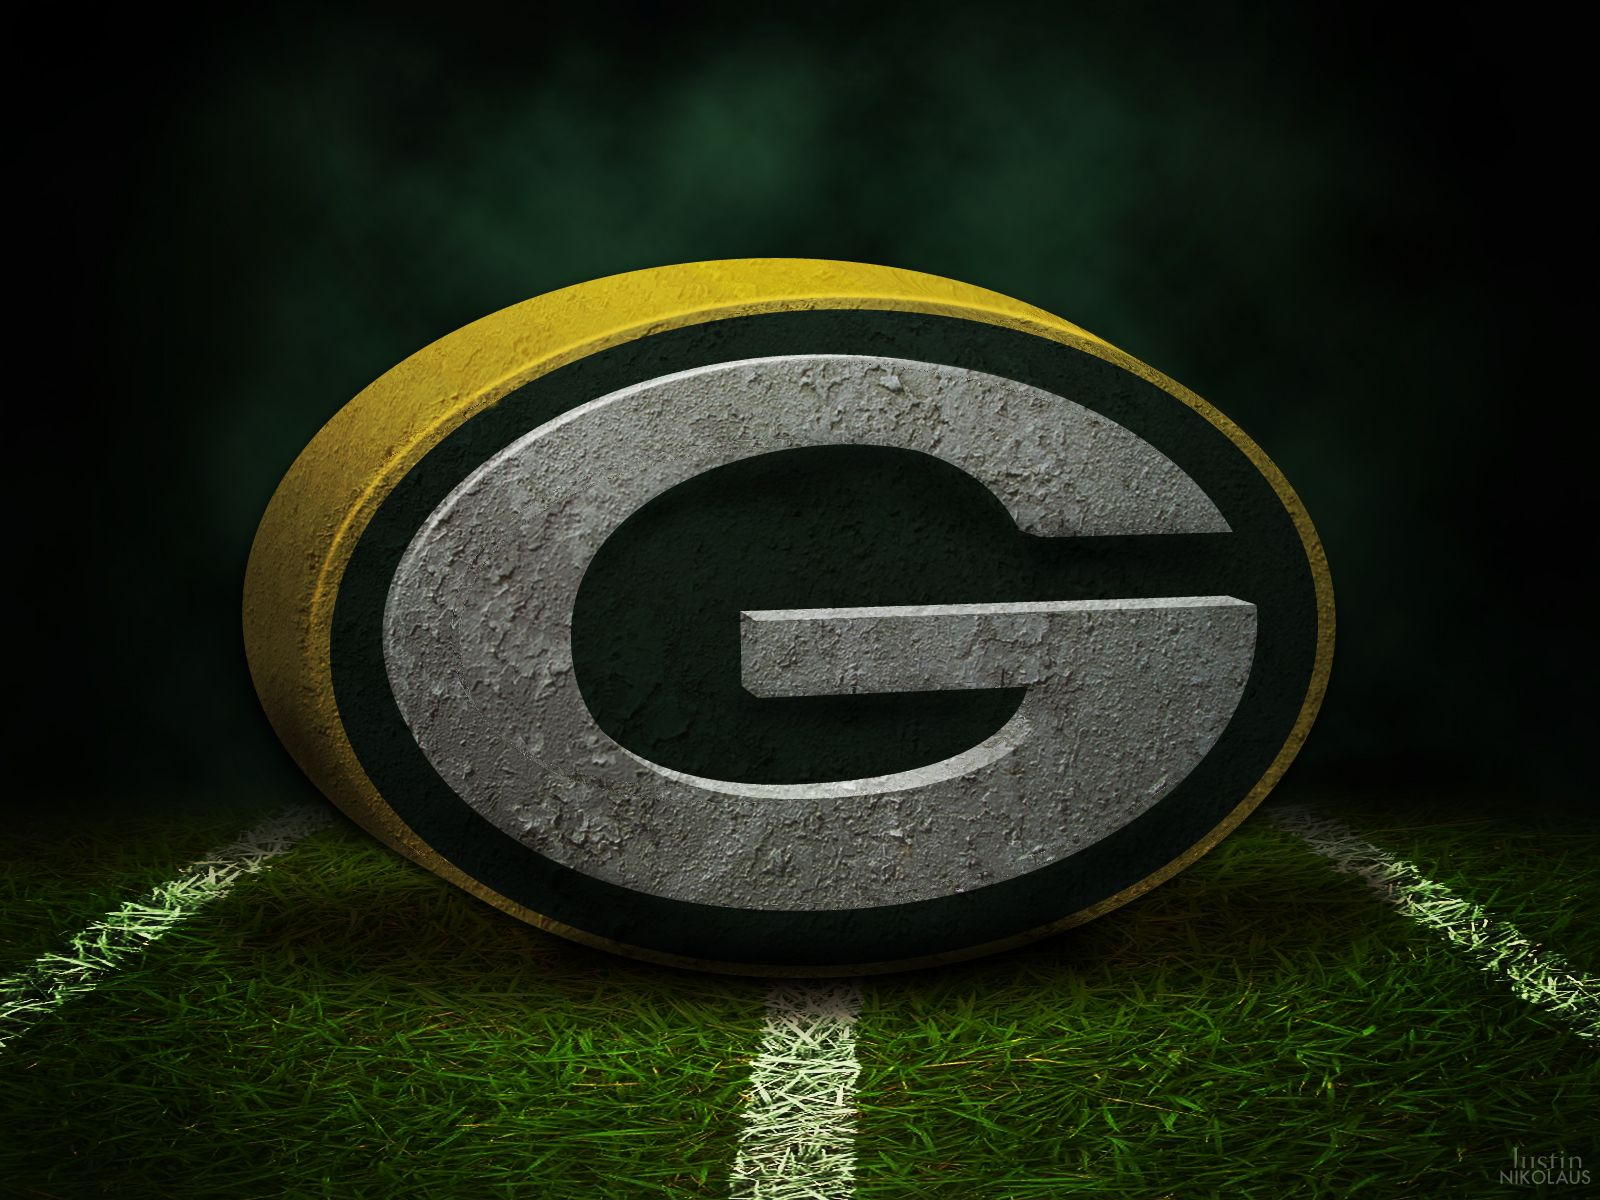 Green Bay Packer Wallpapers Green Bay Packers Wallpaper Green Bay Packers Green Bay Packers Logo